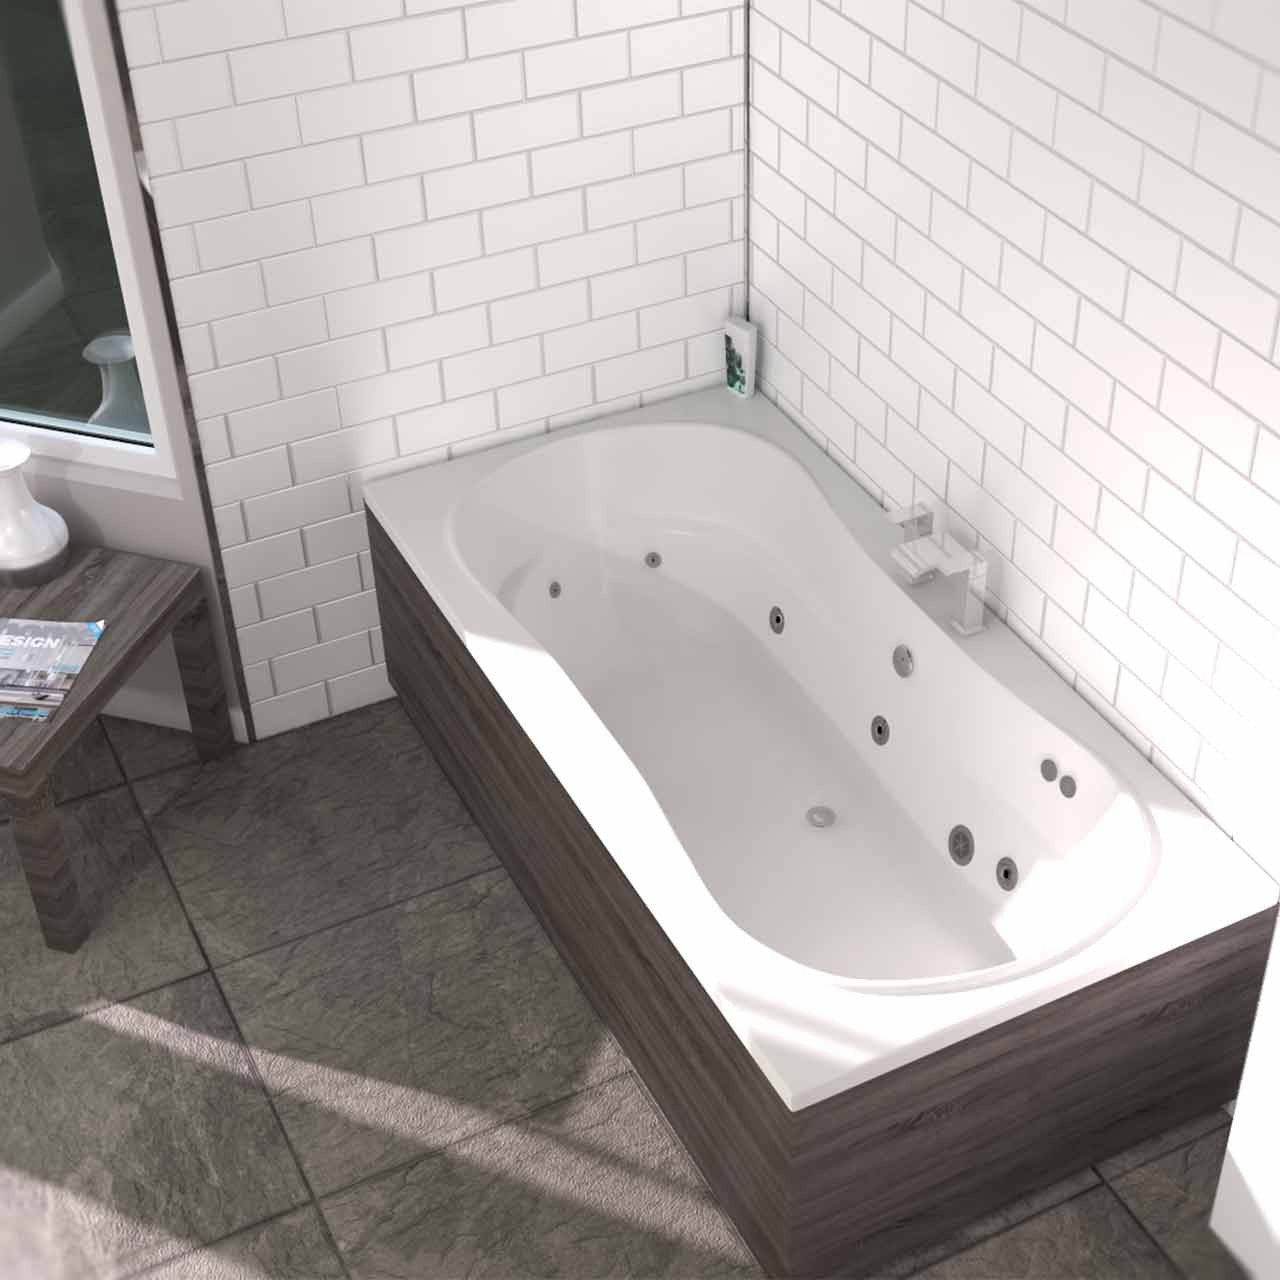 Strata Duo XL Centre Tap 12 Jet Chrome Flat Jet Whirlpool Bath 1800x900mm